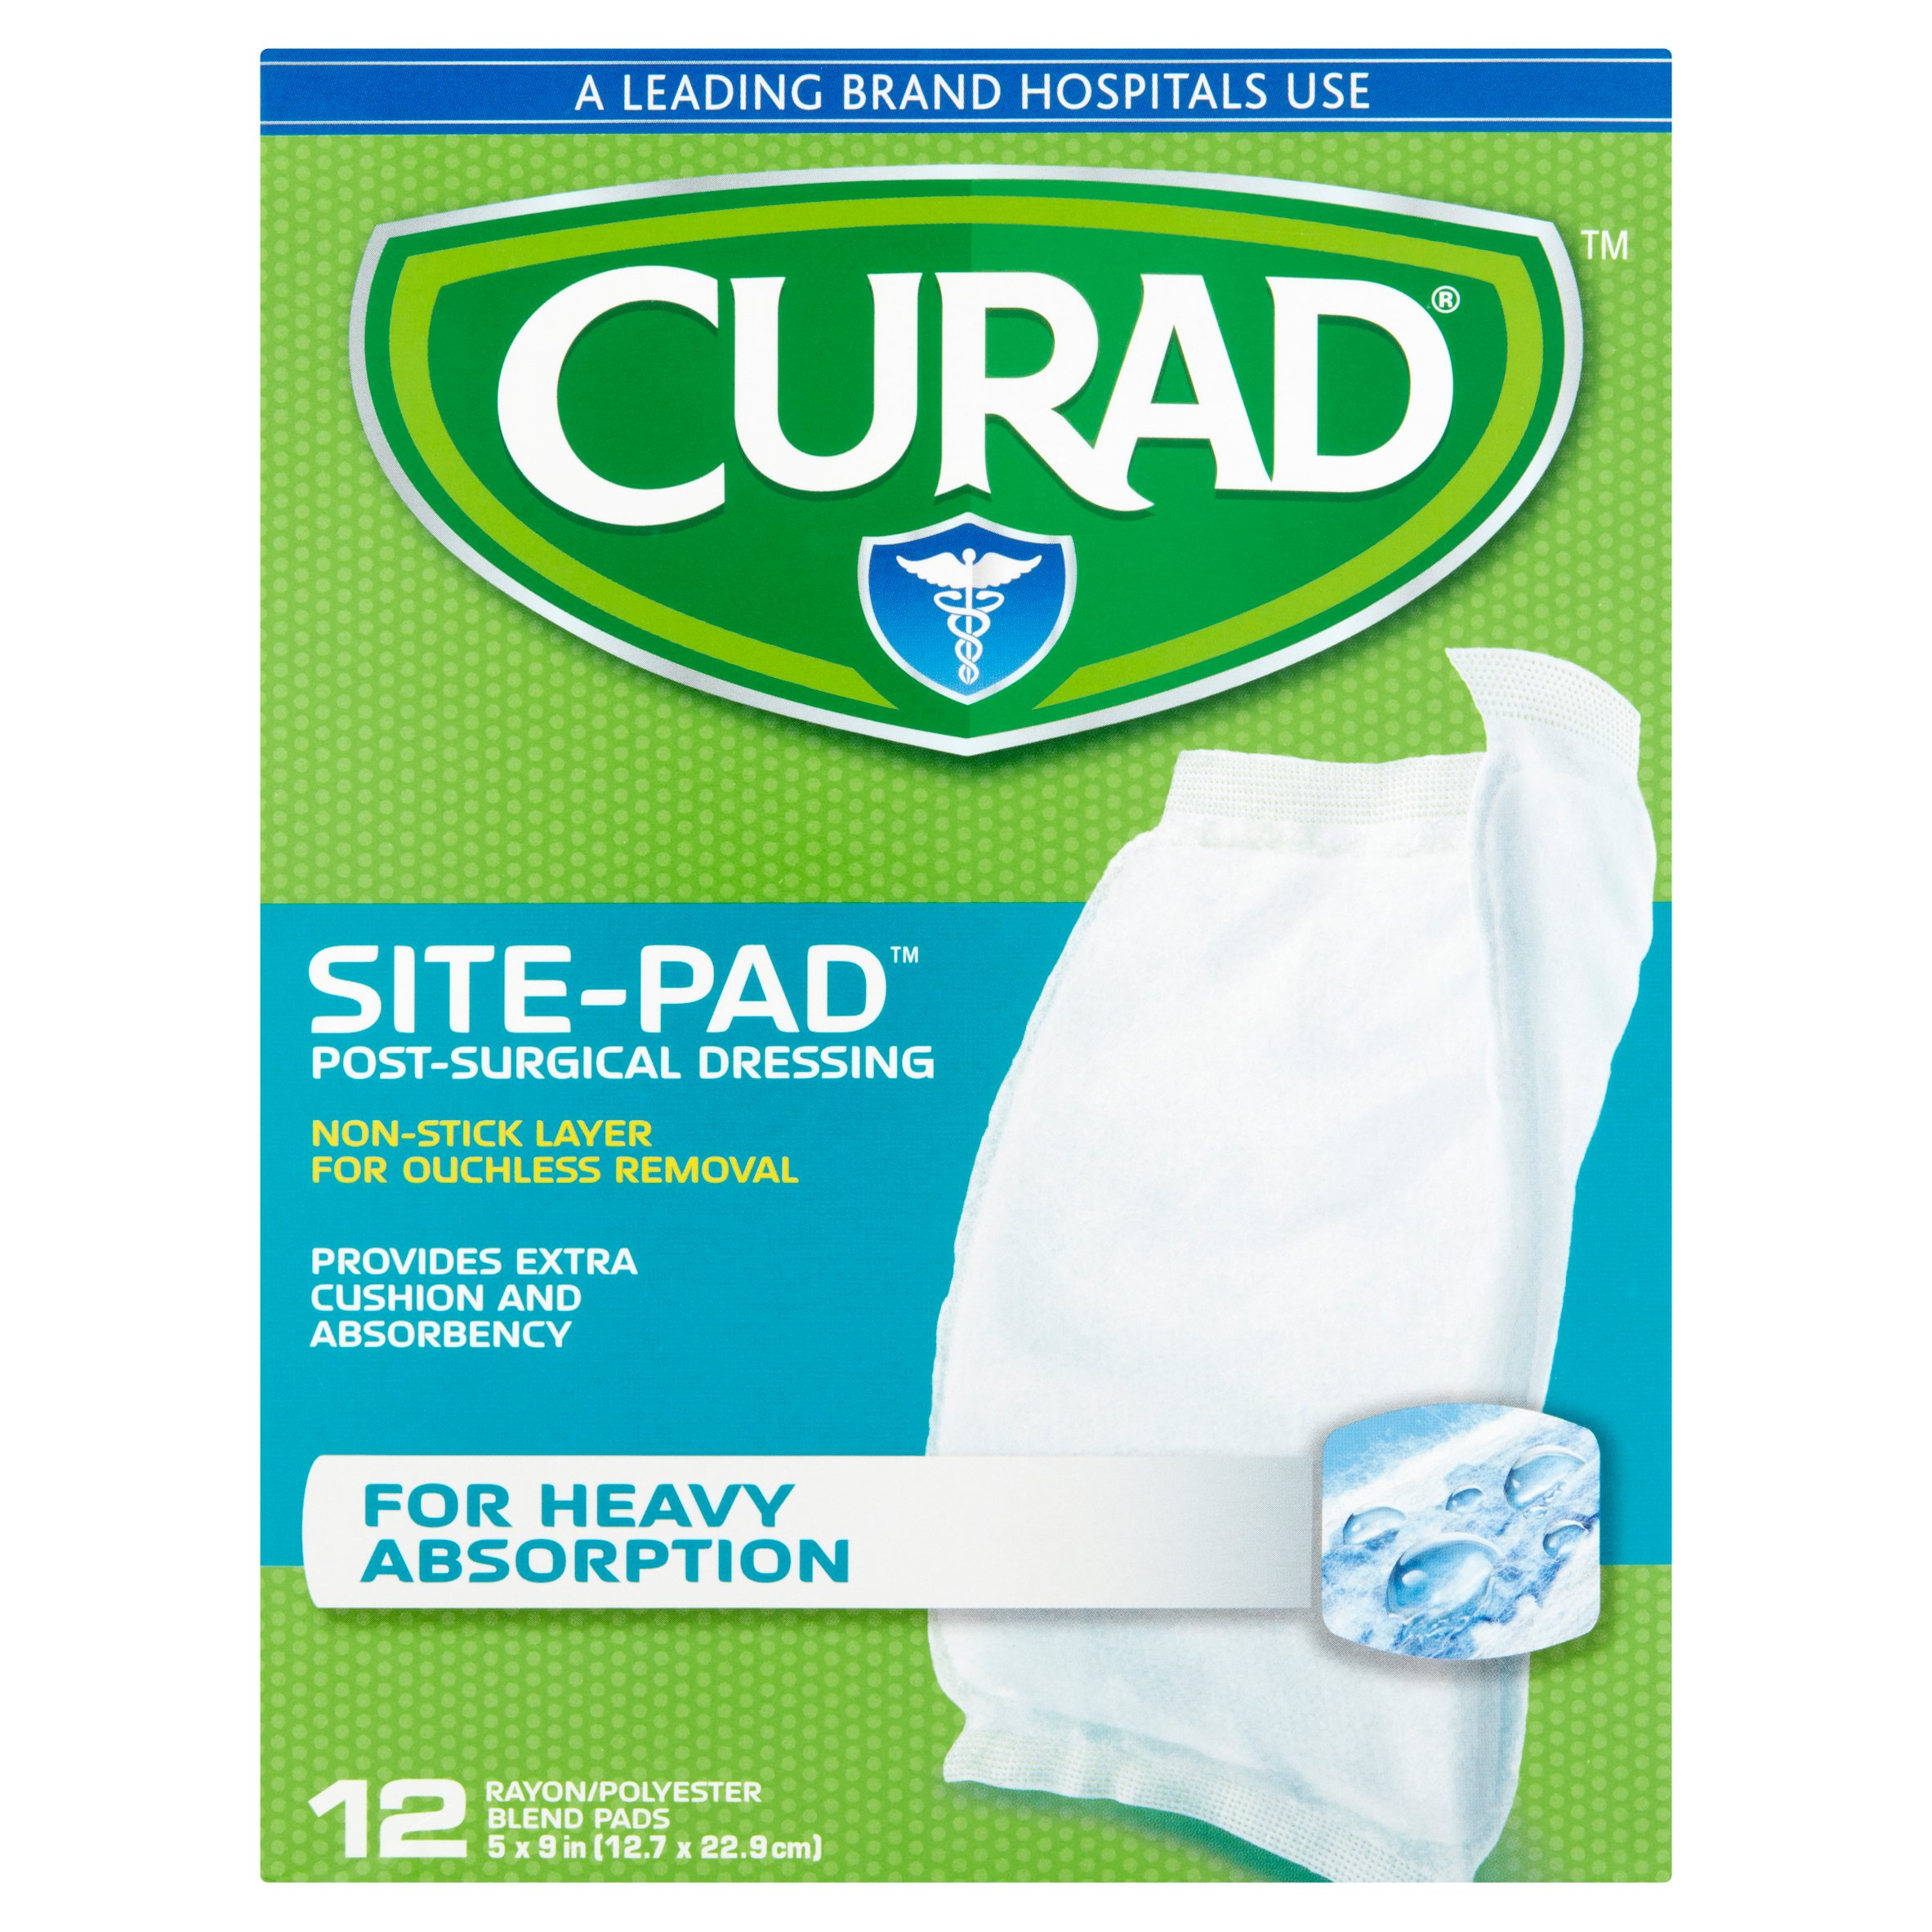 Curad Site-Pad Post-Surgical Dressings, 12 count